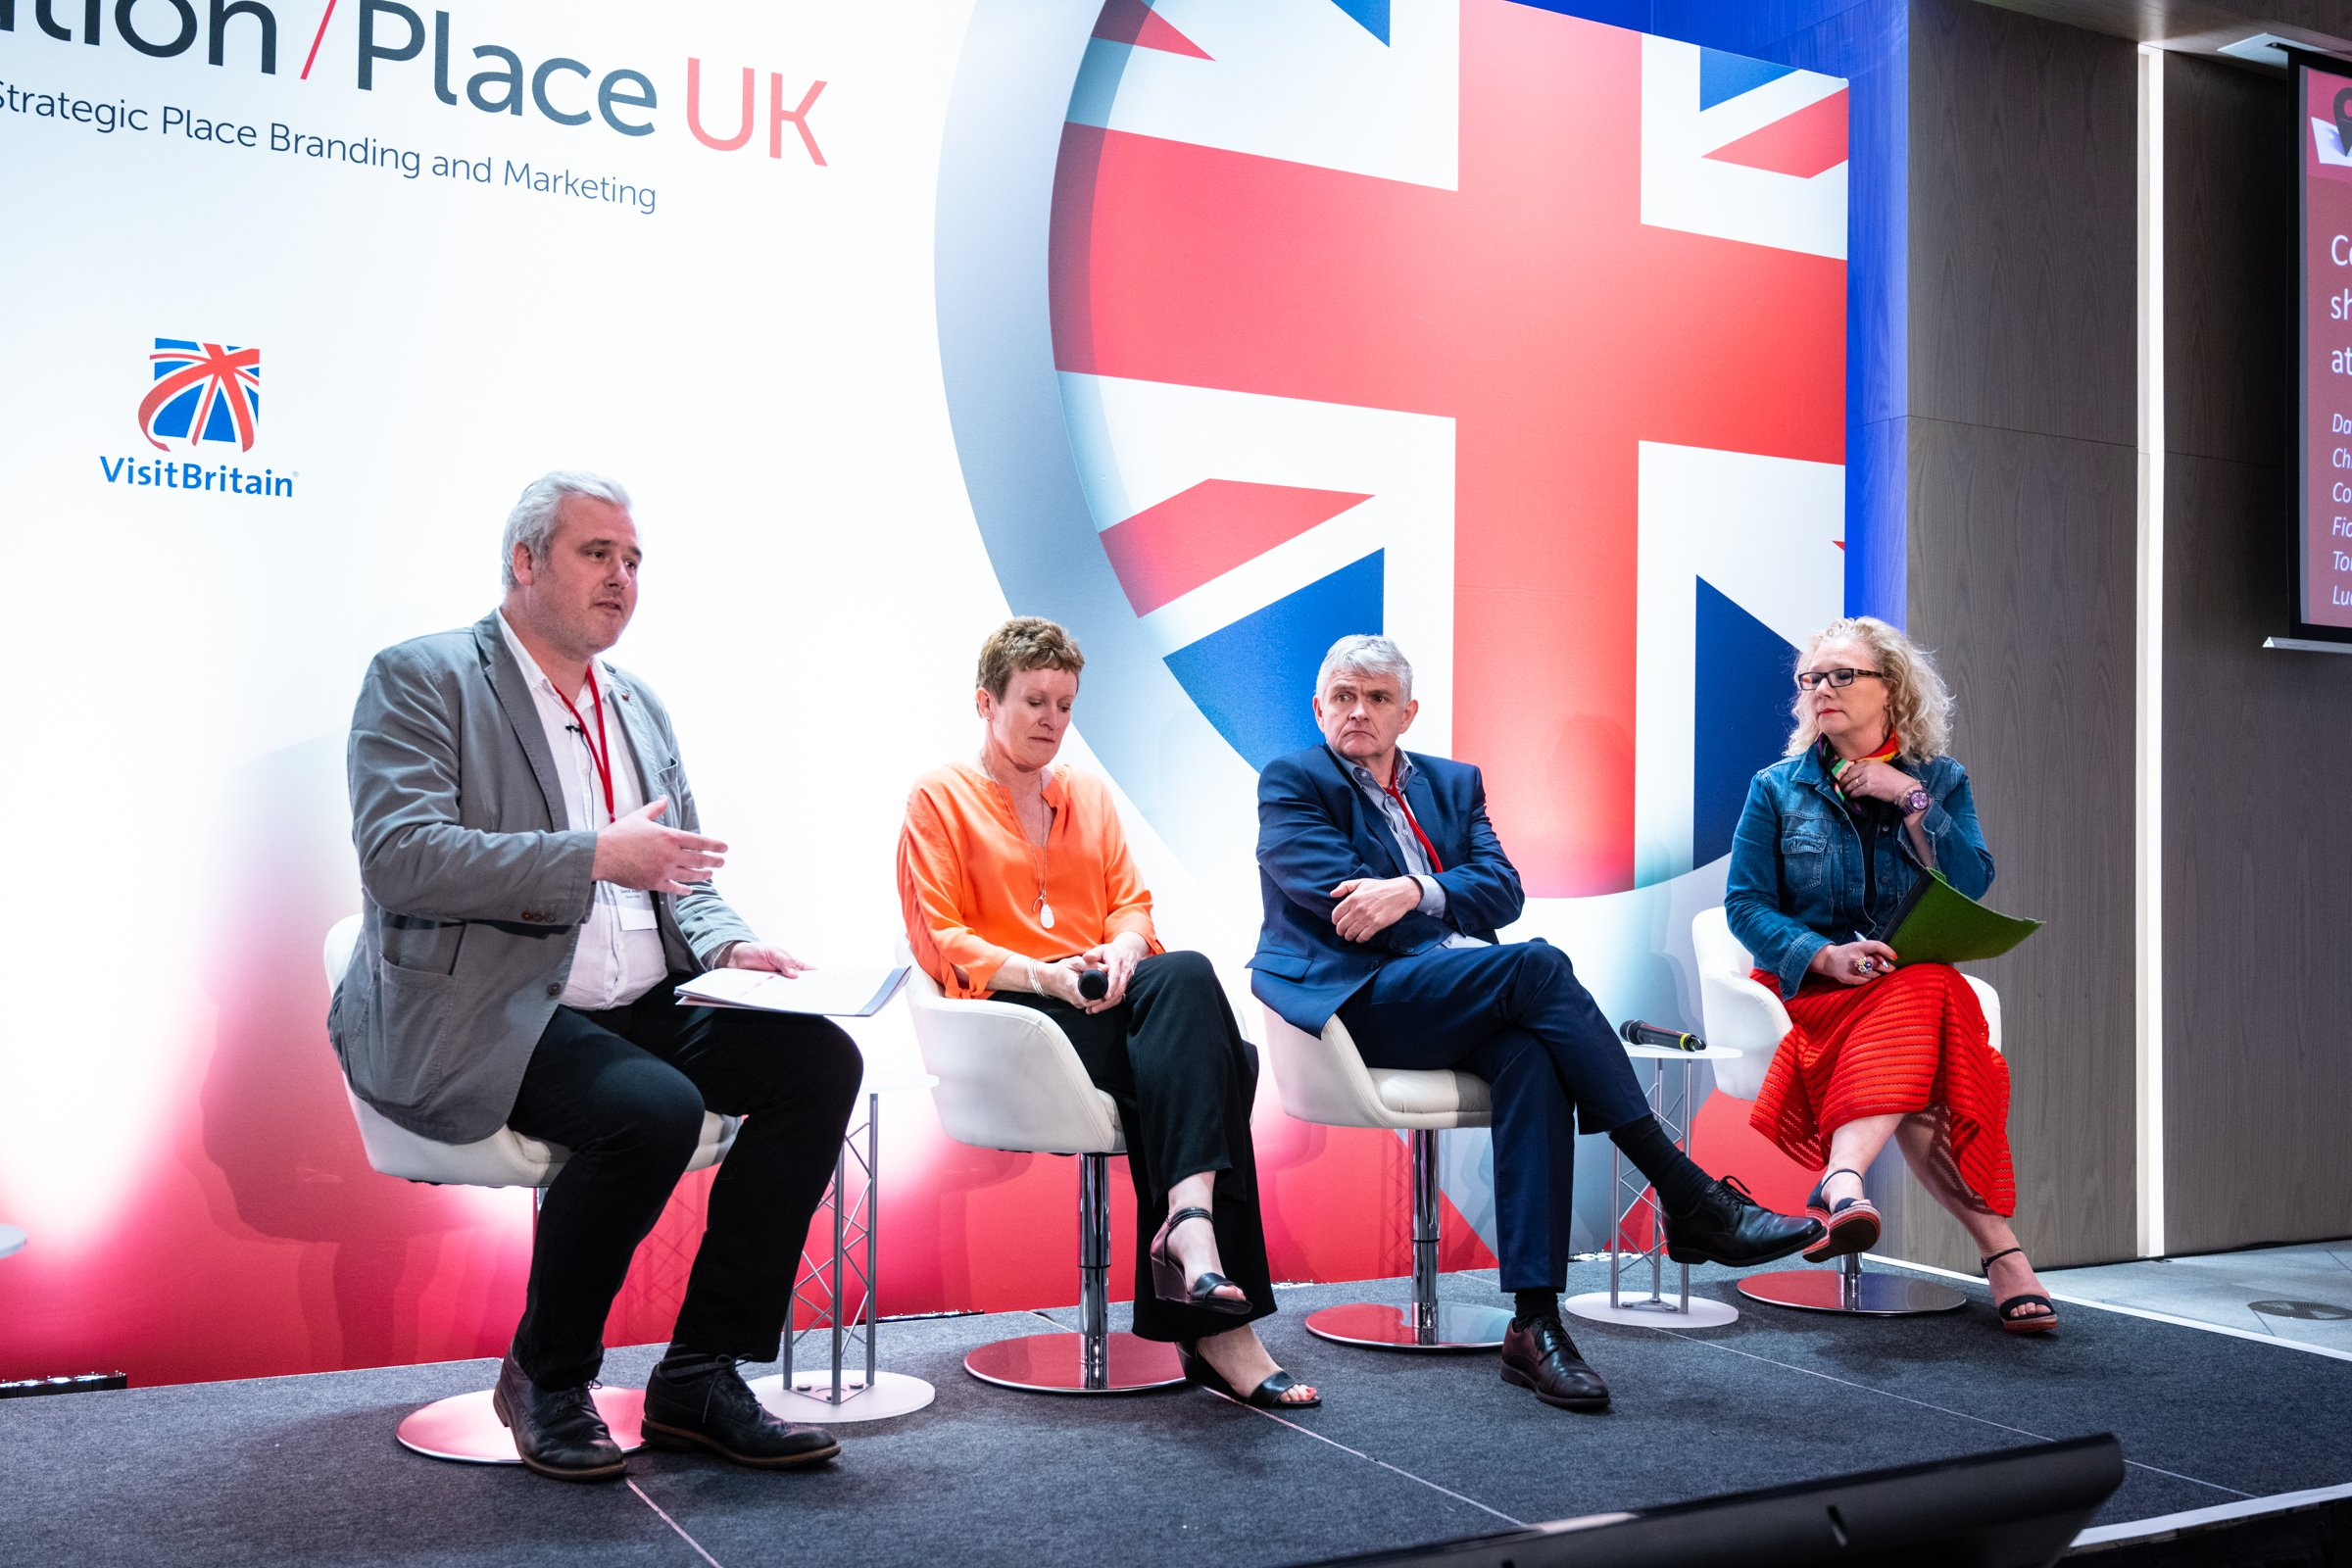 A panel of place brand practitioners at City Nation Place UK